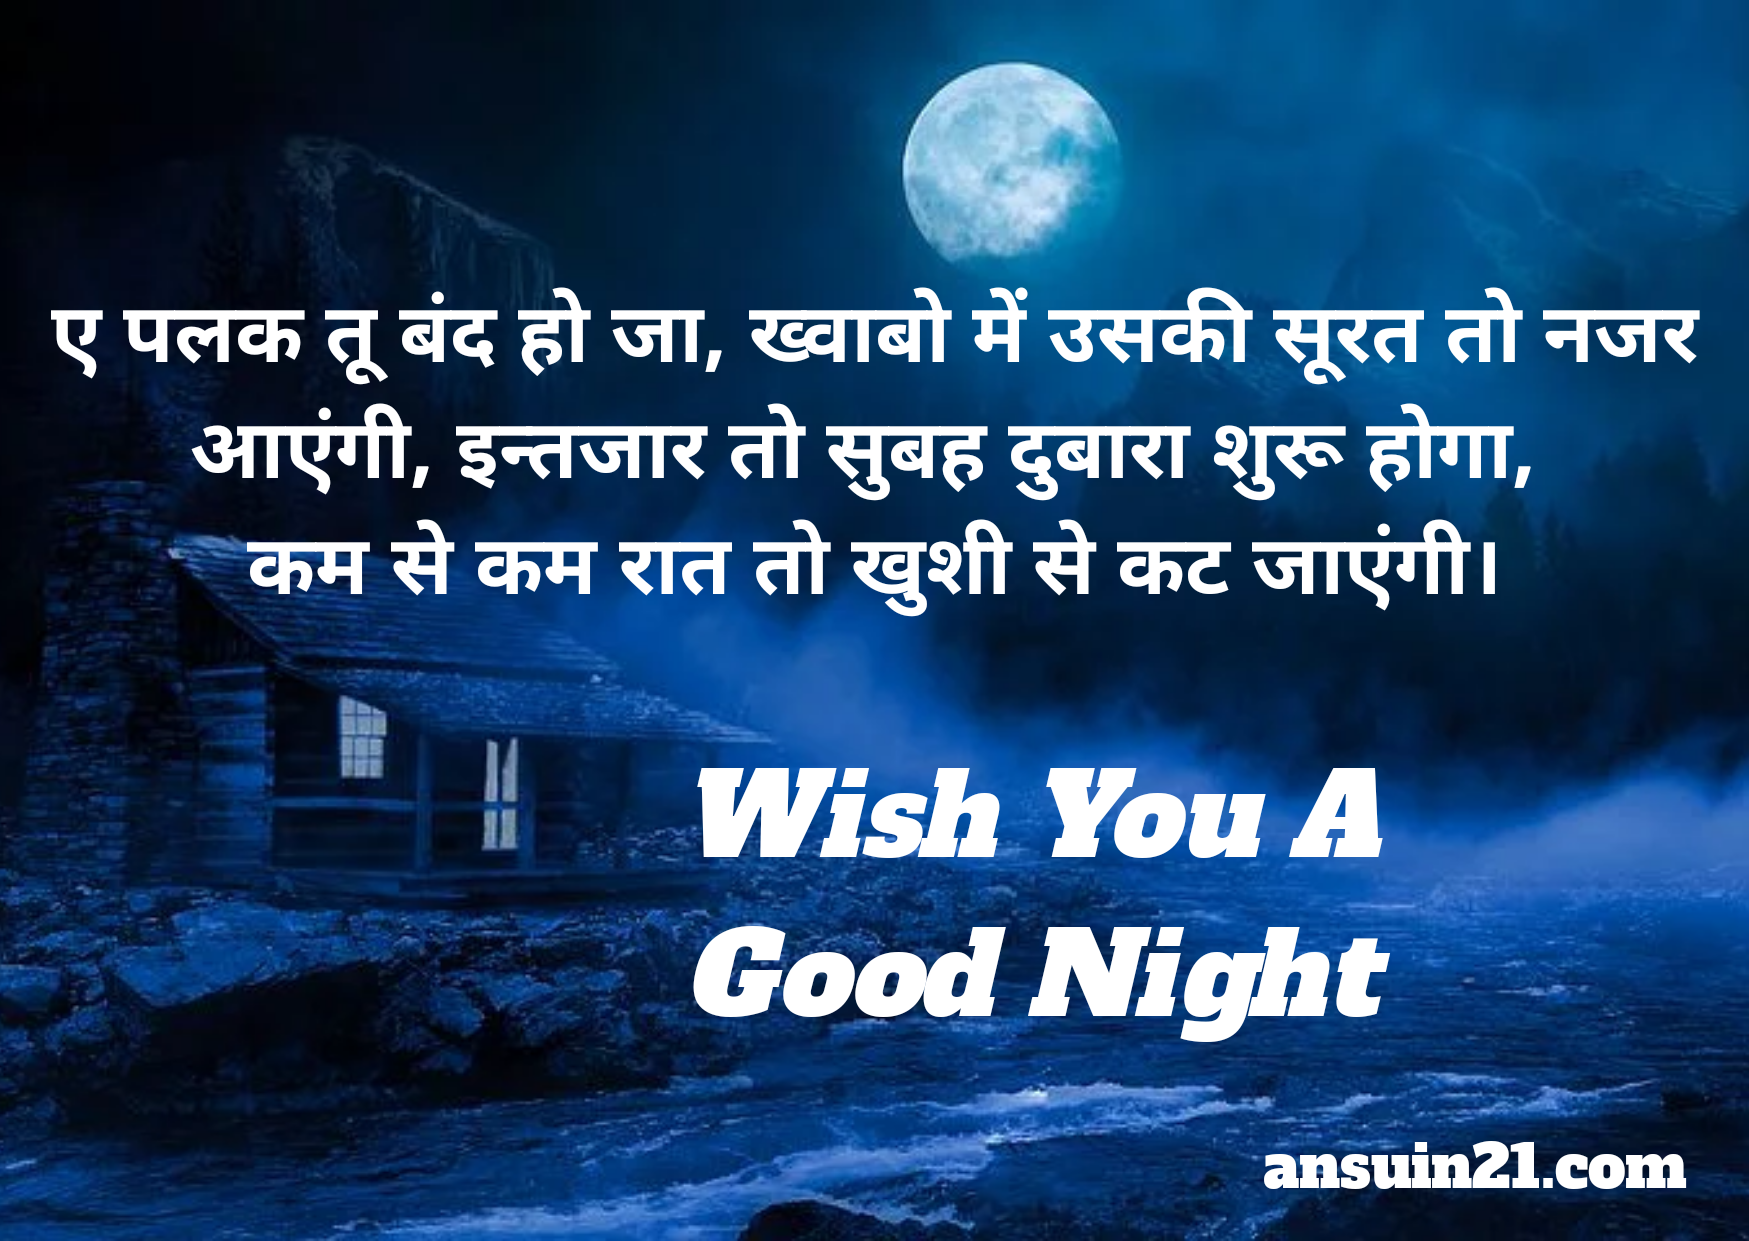 Best Good Night Hindi wishes Status sms Images, Best romantic good night Hindi wishes images for whatsaap free download,